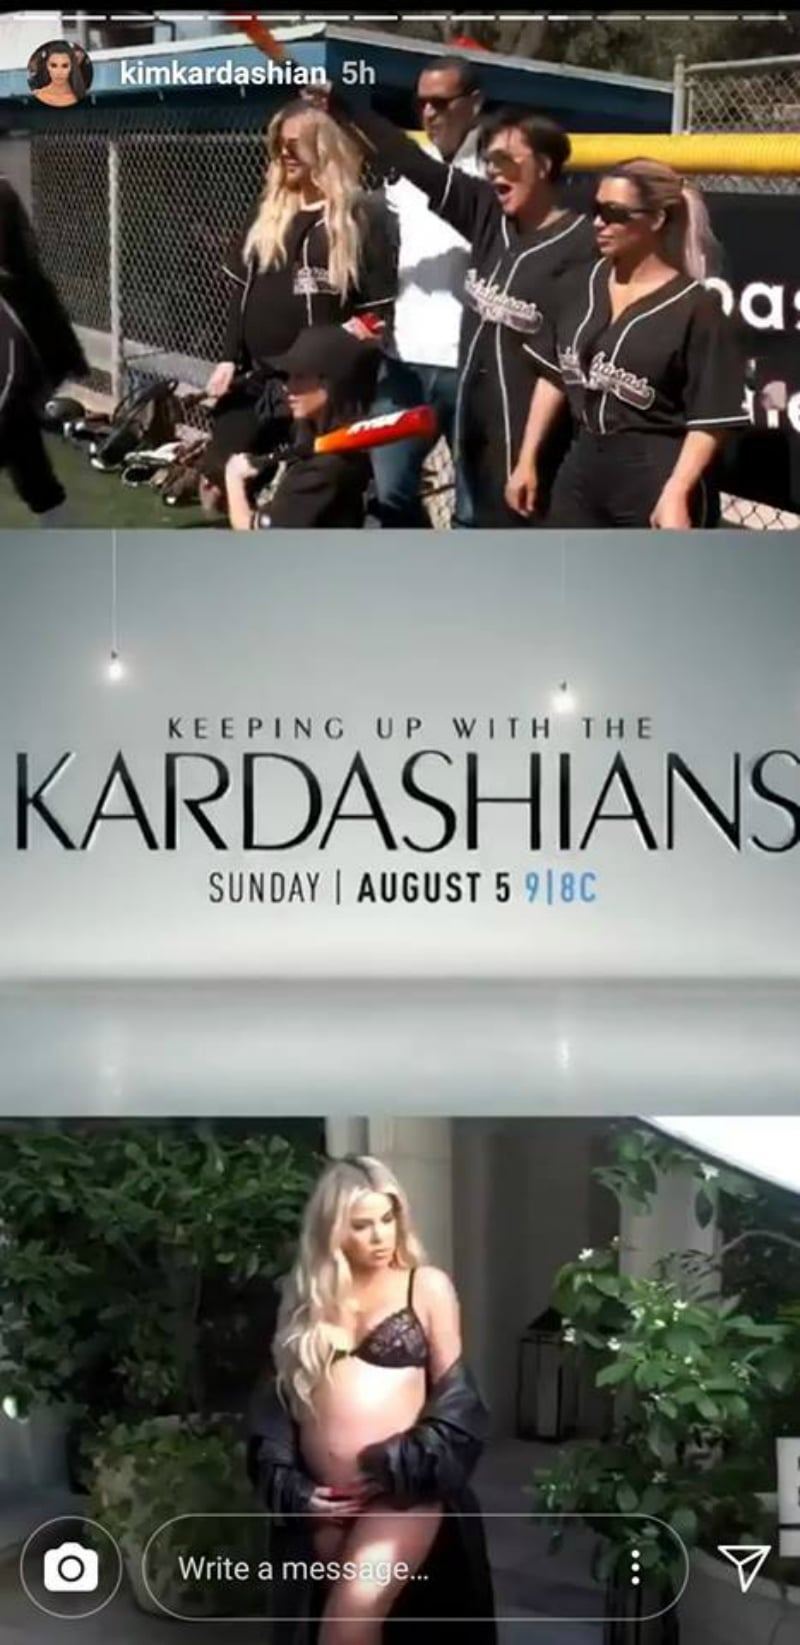 A screenshot of the Keeping Up With The Kardashians promo from Kim Kardashian's Instagram stories